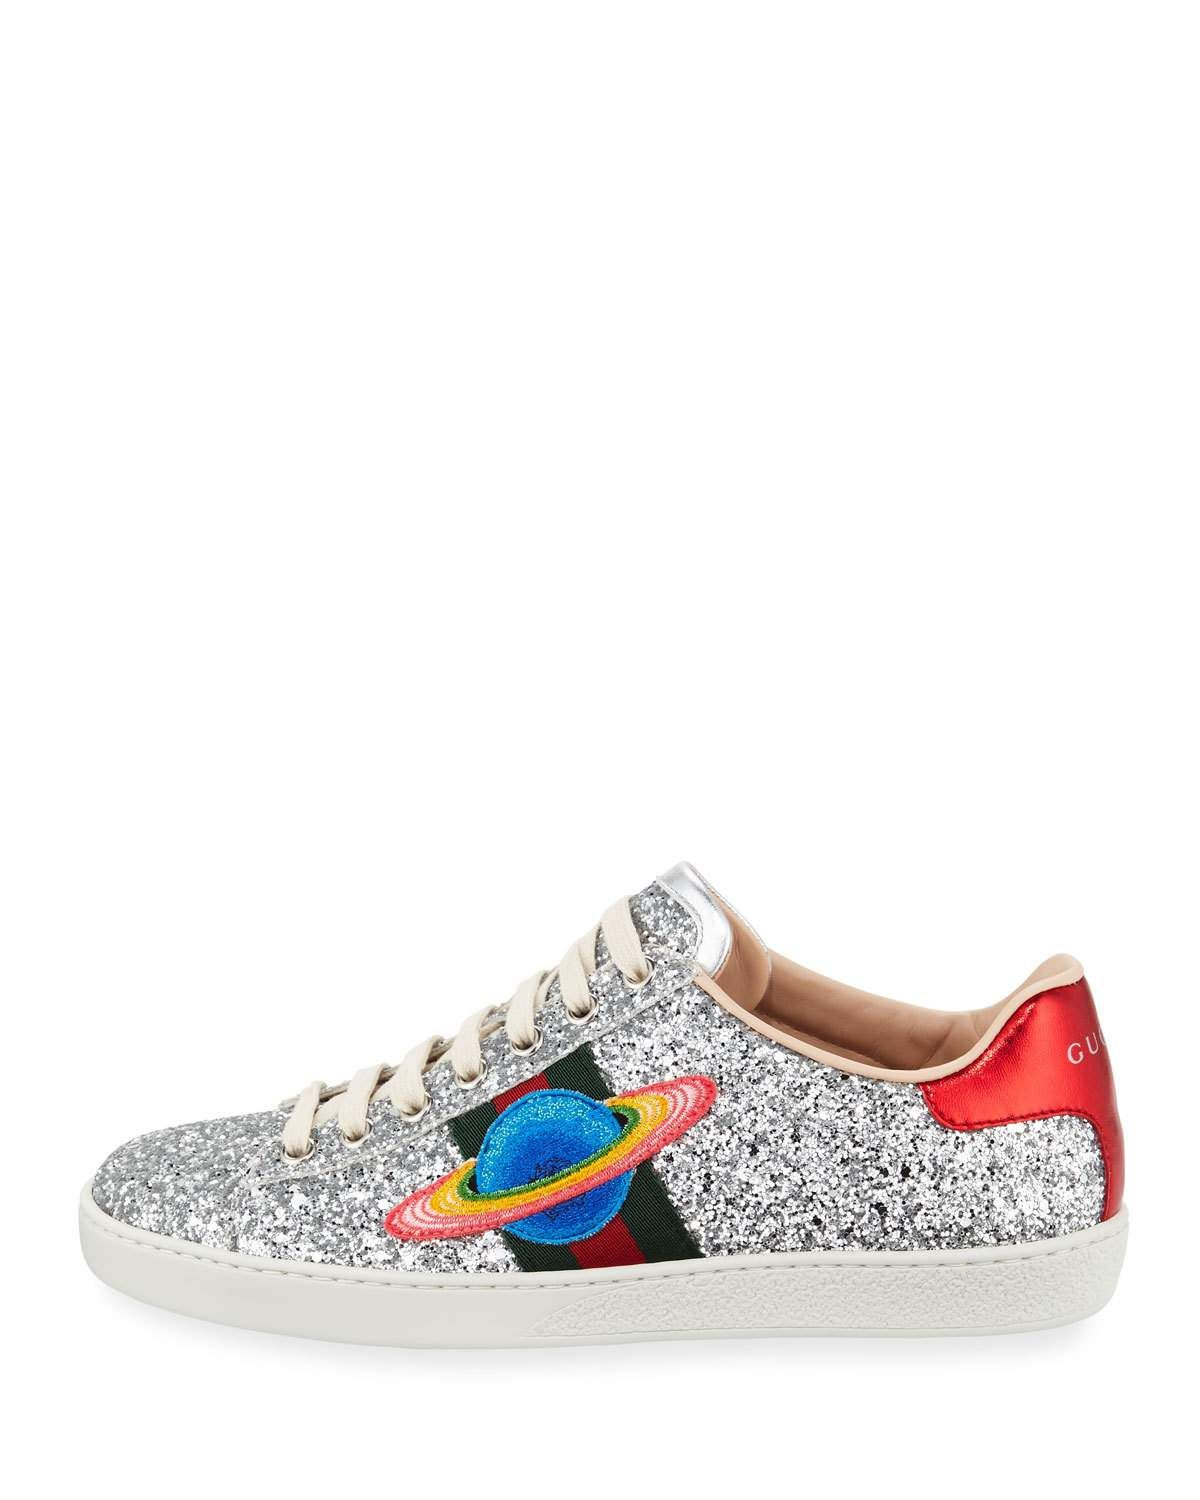 39046ee1a80d6 Shop All Women s Designer Shoes at Neiman Marcus. Gucci Ace Saturn Glitter  Low-Top Sneaker